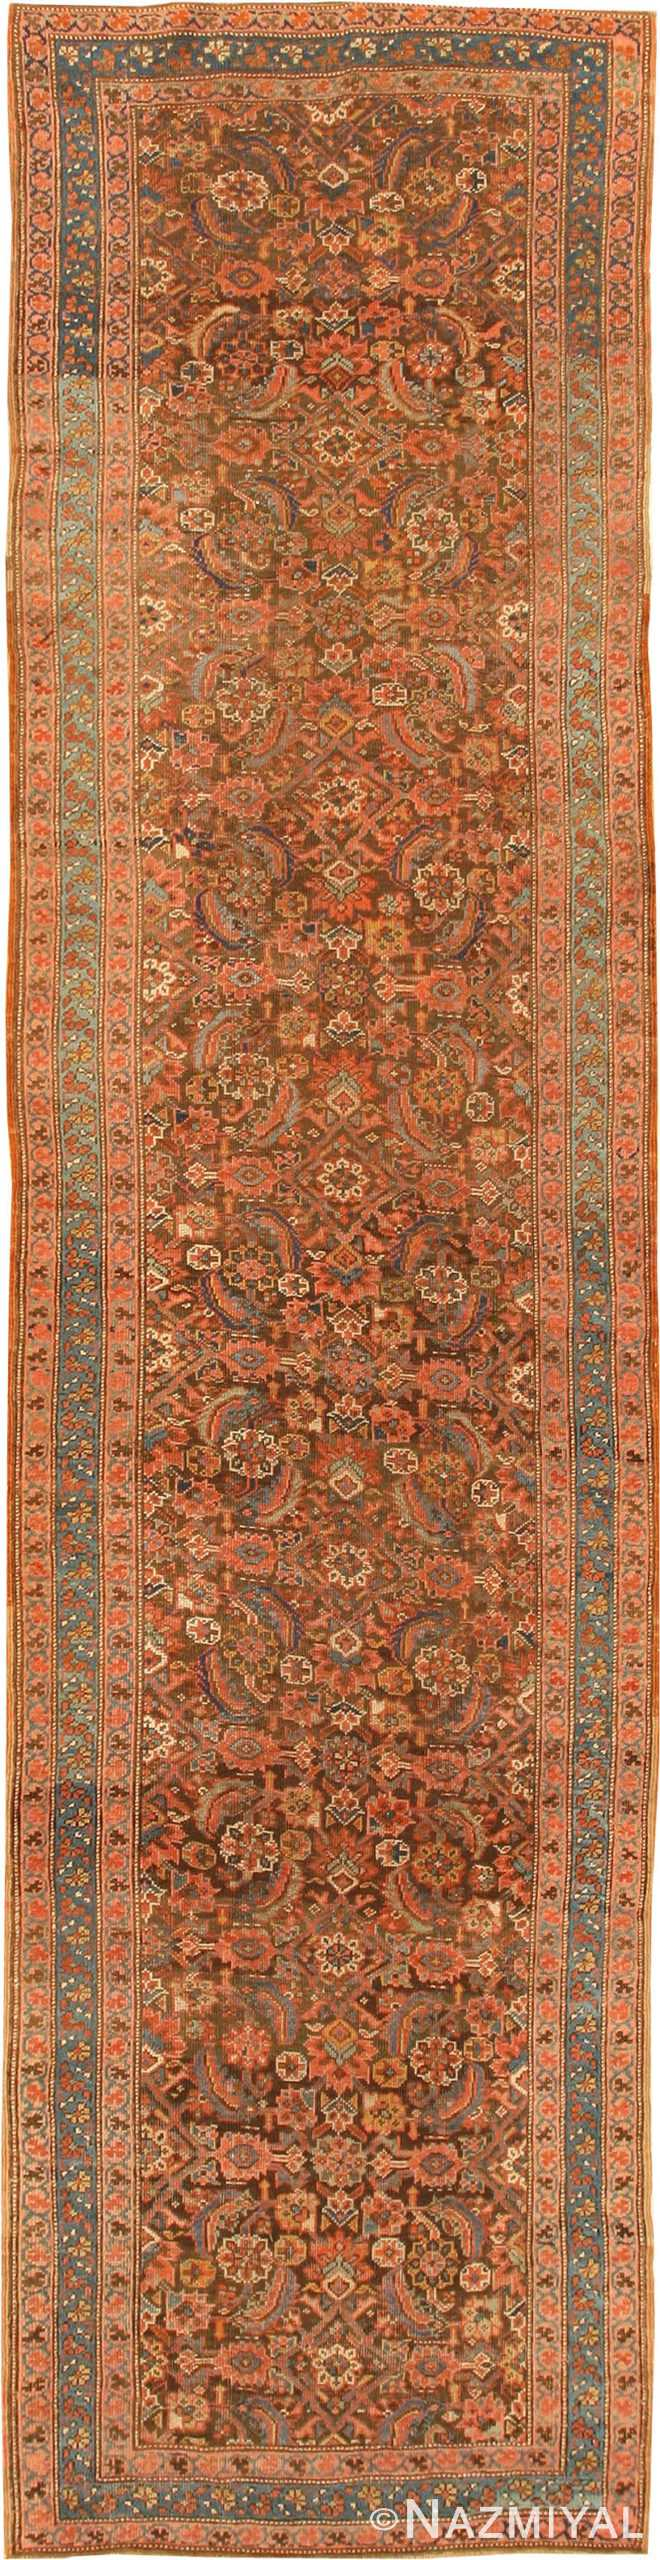 Antique Bakshaish Persian Runner Rug 42365 by Nazmiyal